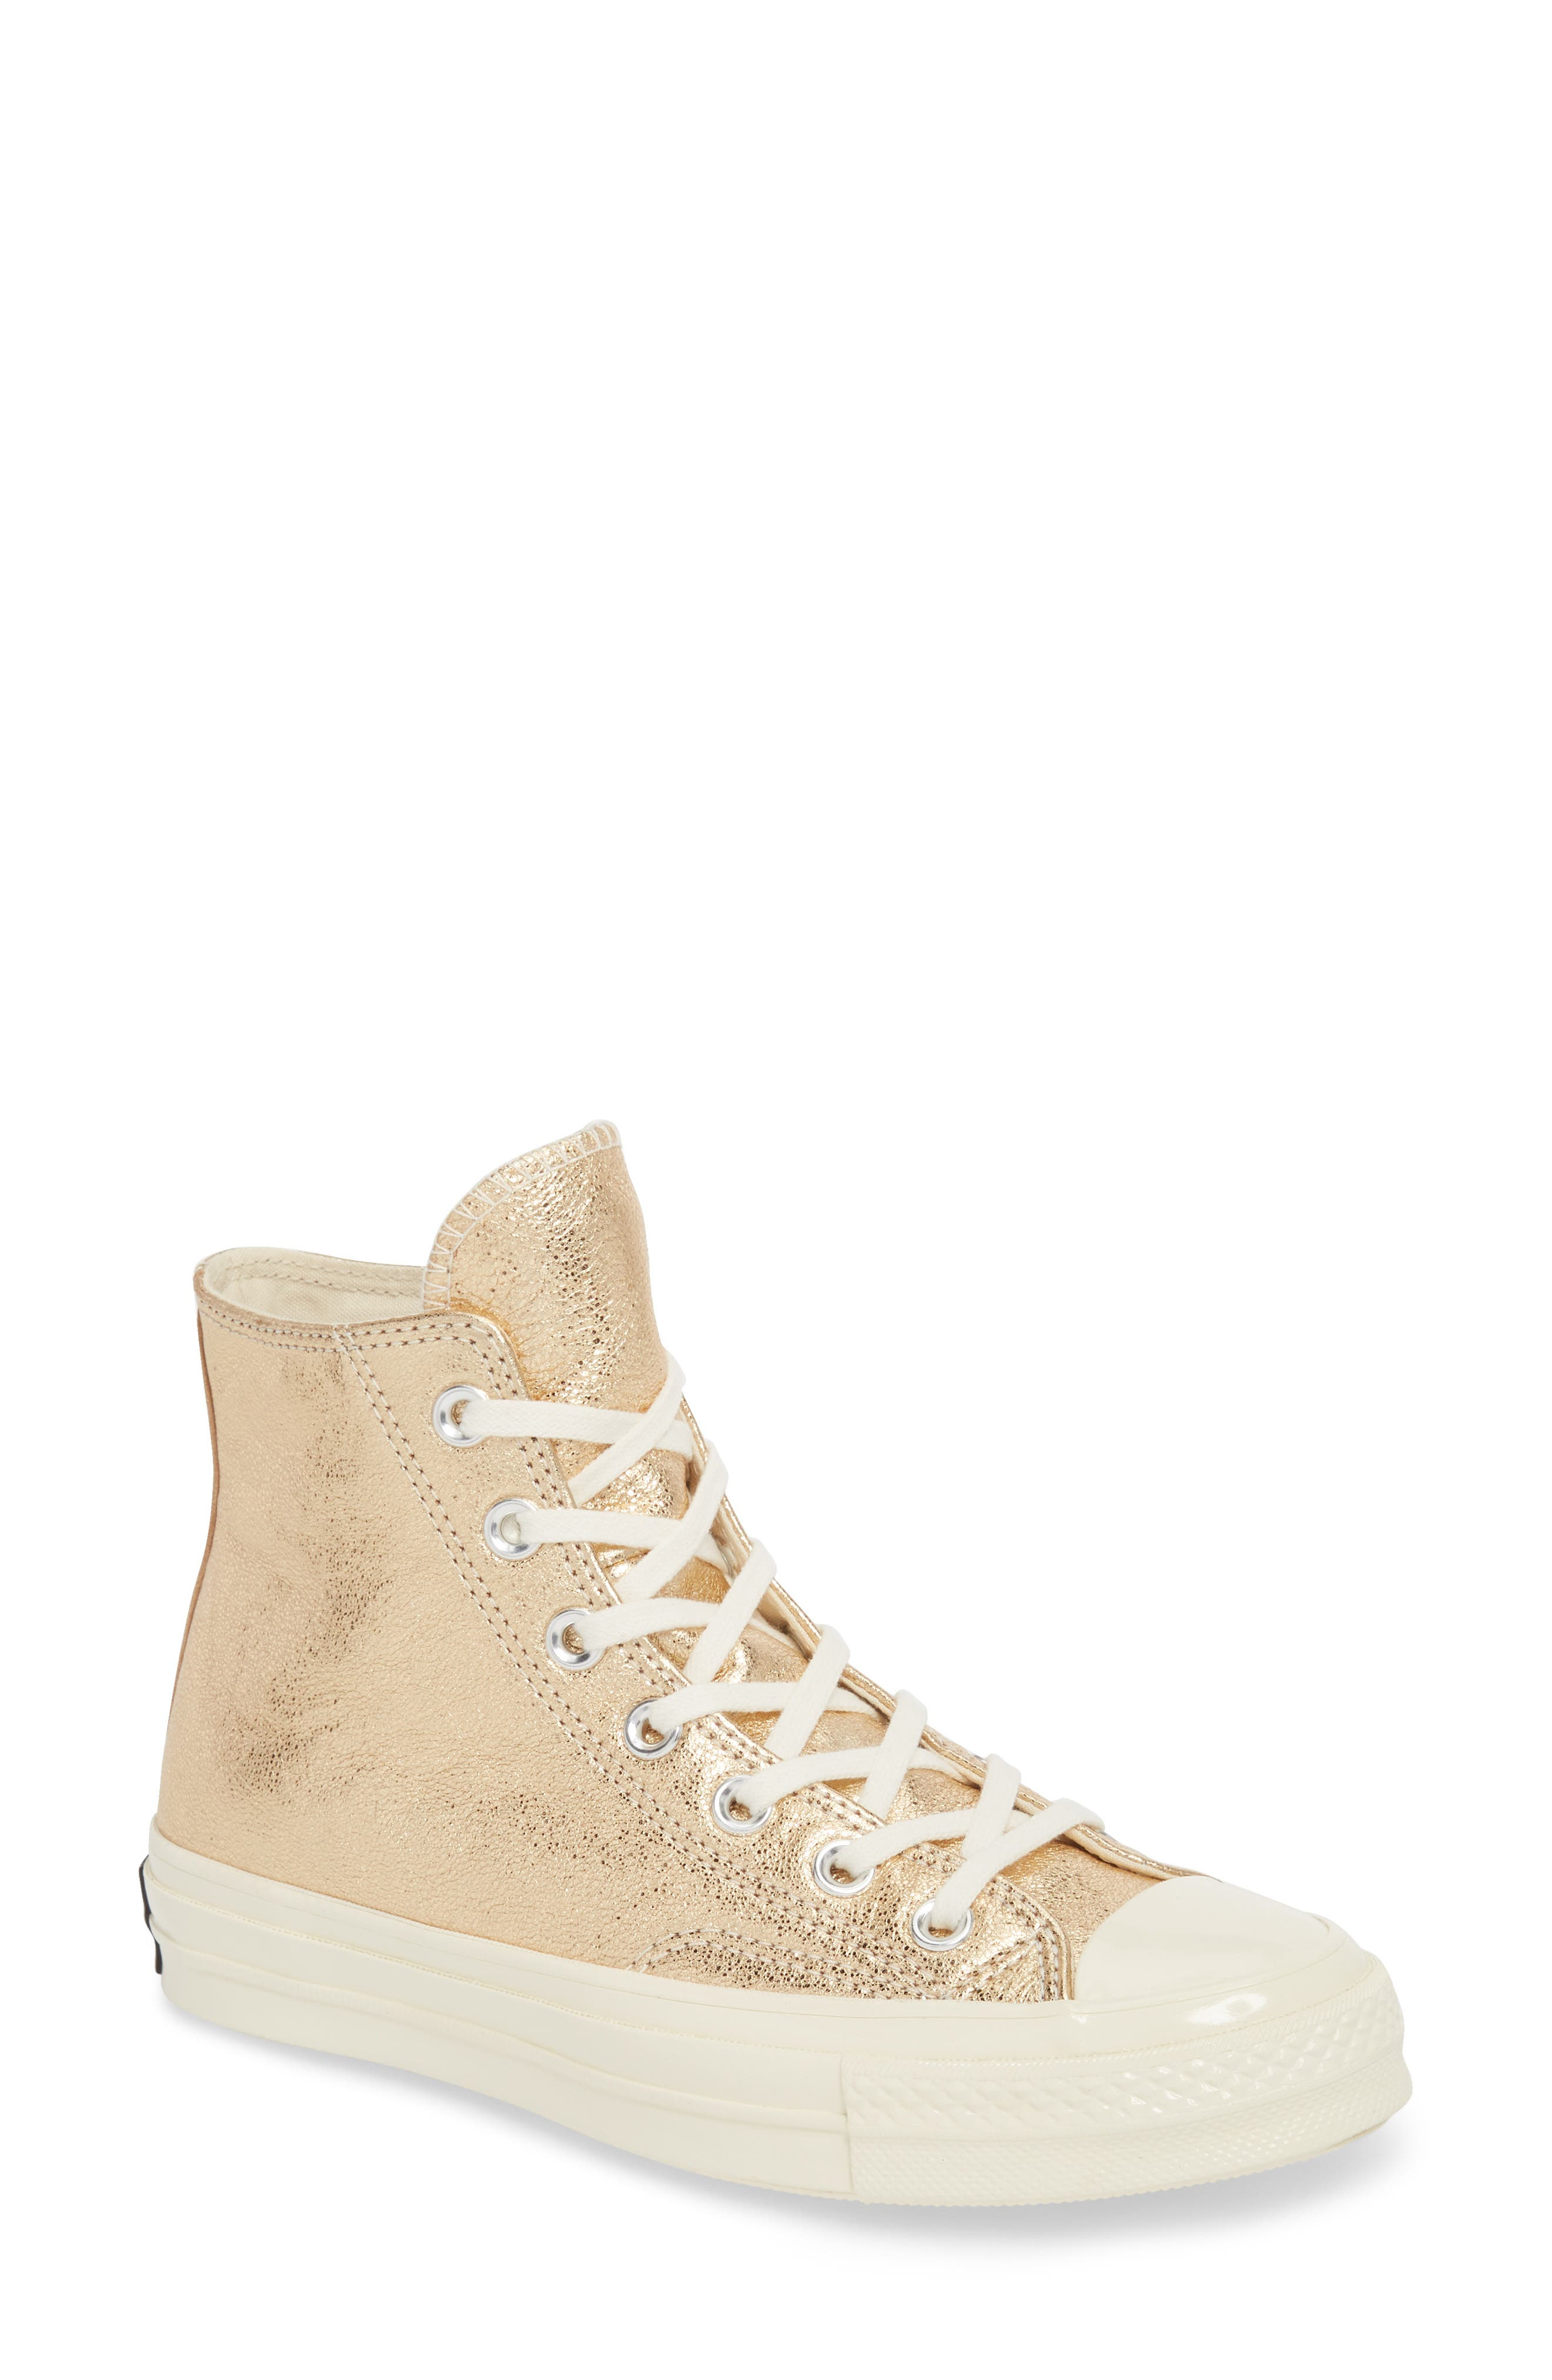 Chuck Taylor<sup>®</sup> All Star<sup>®</sup> Heavy Metal 70 High Top Sneaker,                             Main thumbnail 3, color,